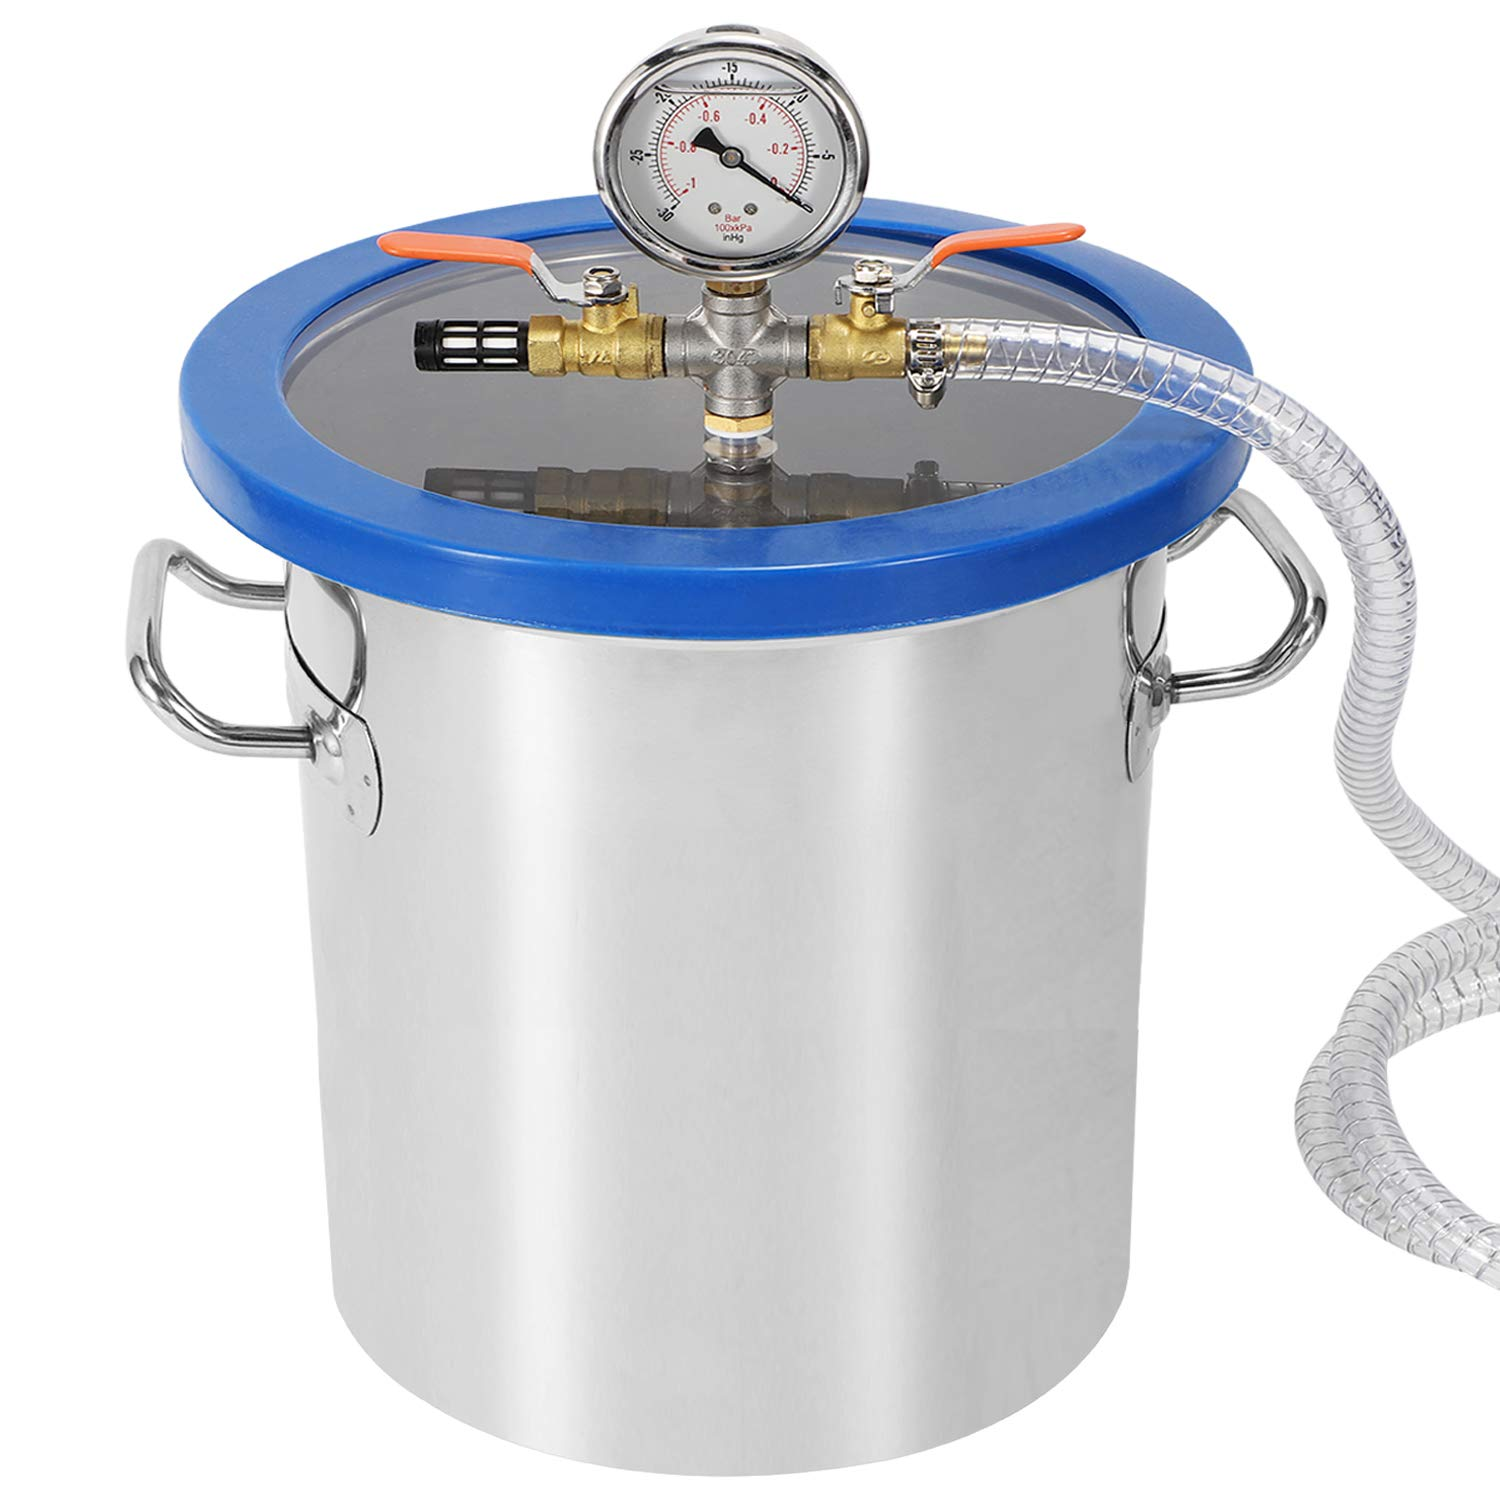 Poafamx Vacuum Chamber Degassing Kit Stainless Steel 5 Gallon with Acrylic Lid for Dehydrated Resin Defoaming AB Gum Candle Oil Polyurethane Silicones (5 Gallon, Blue)